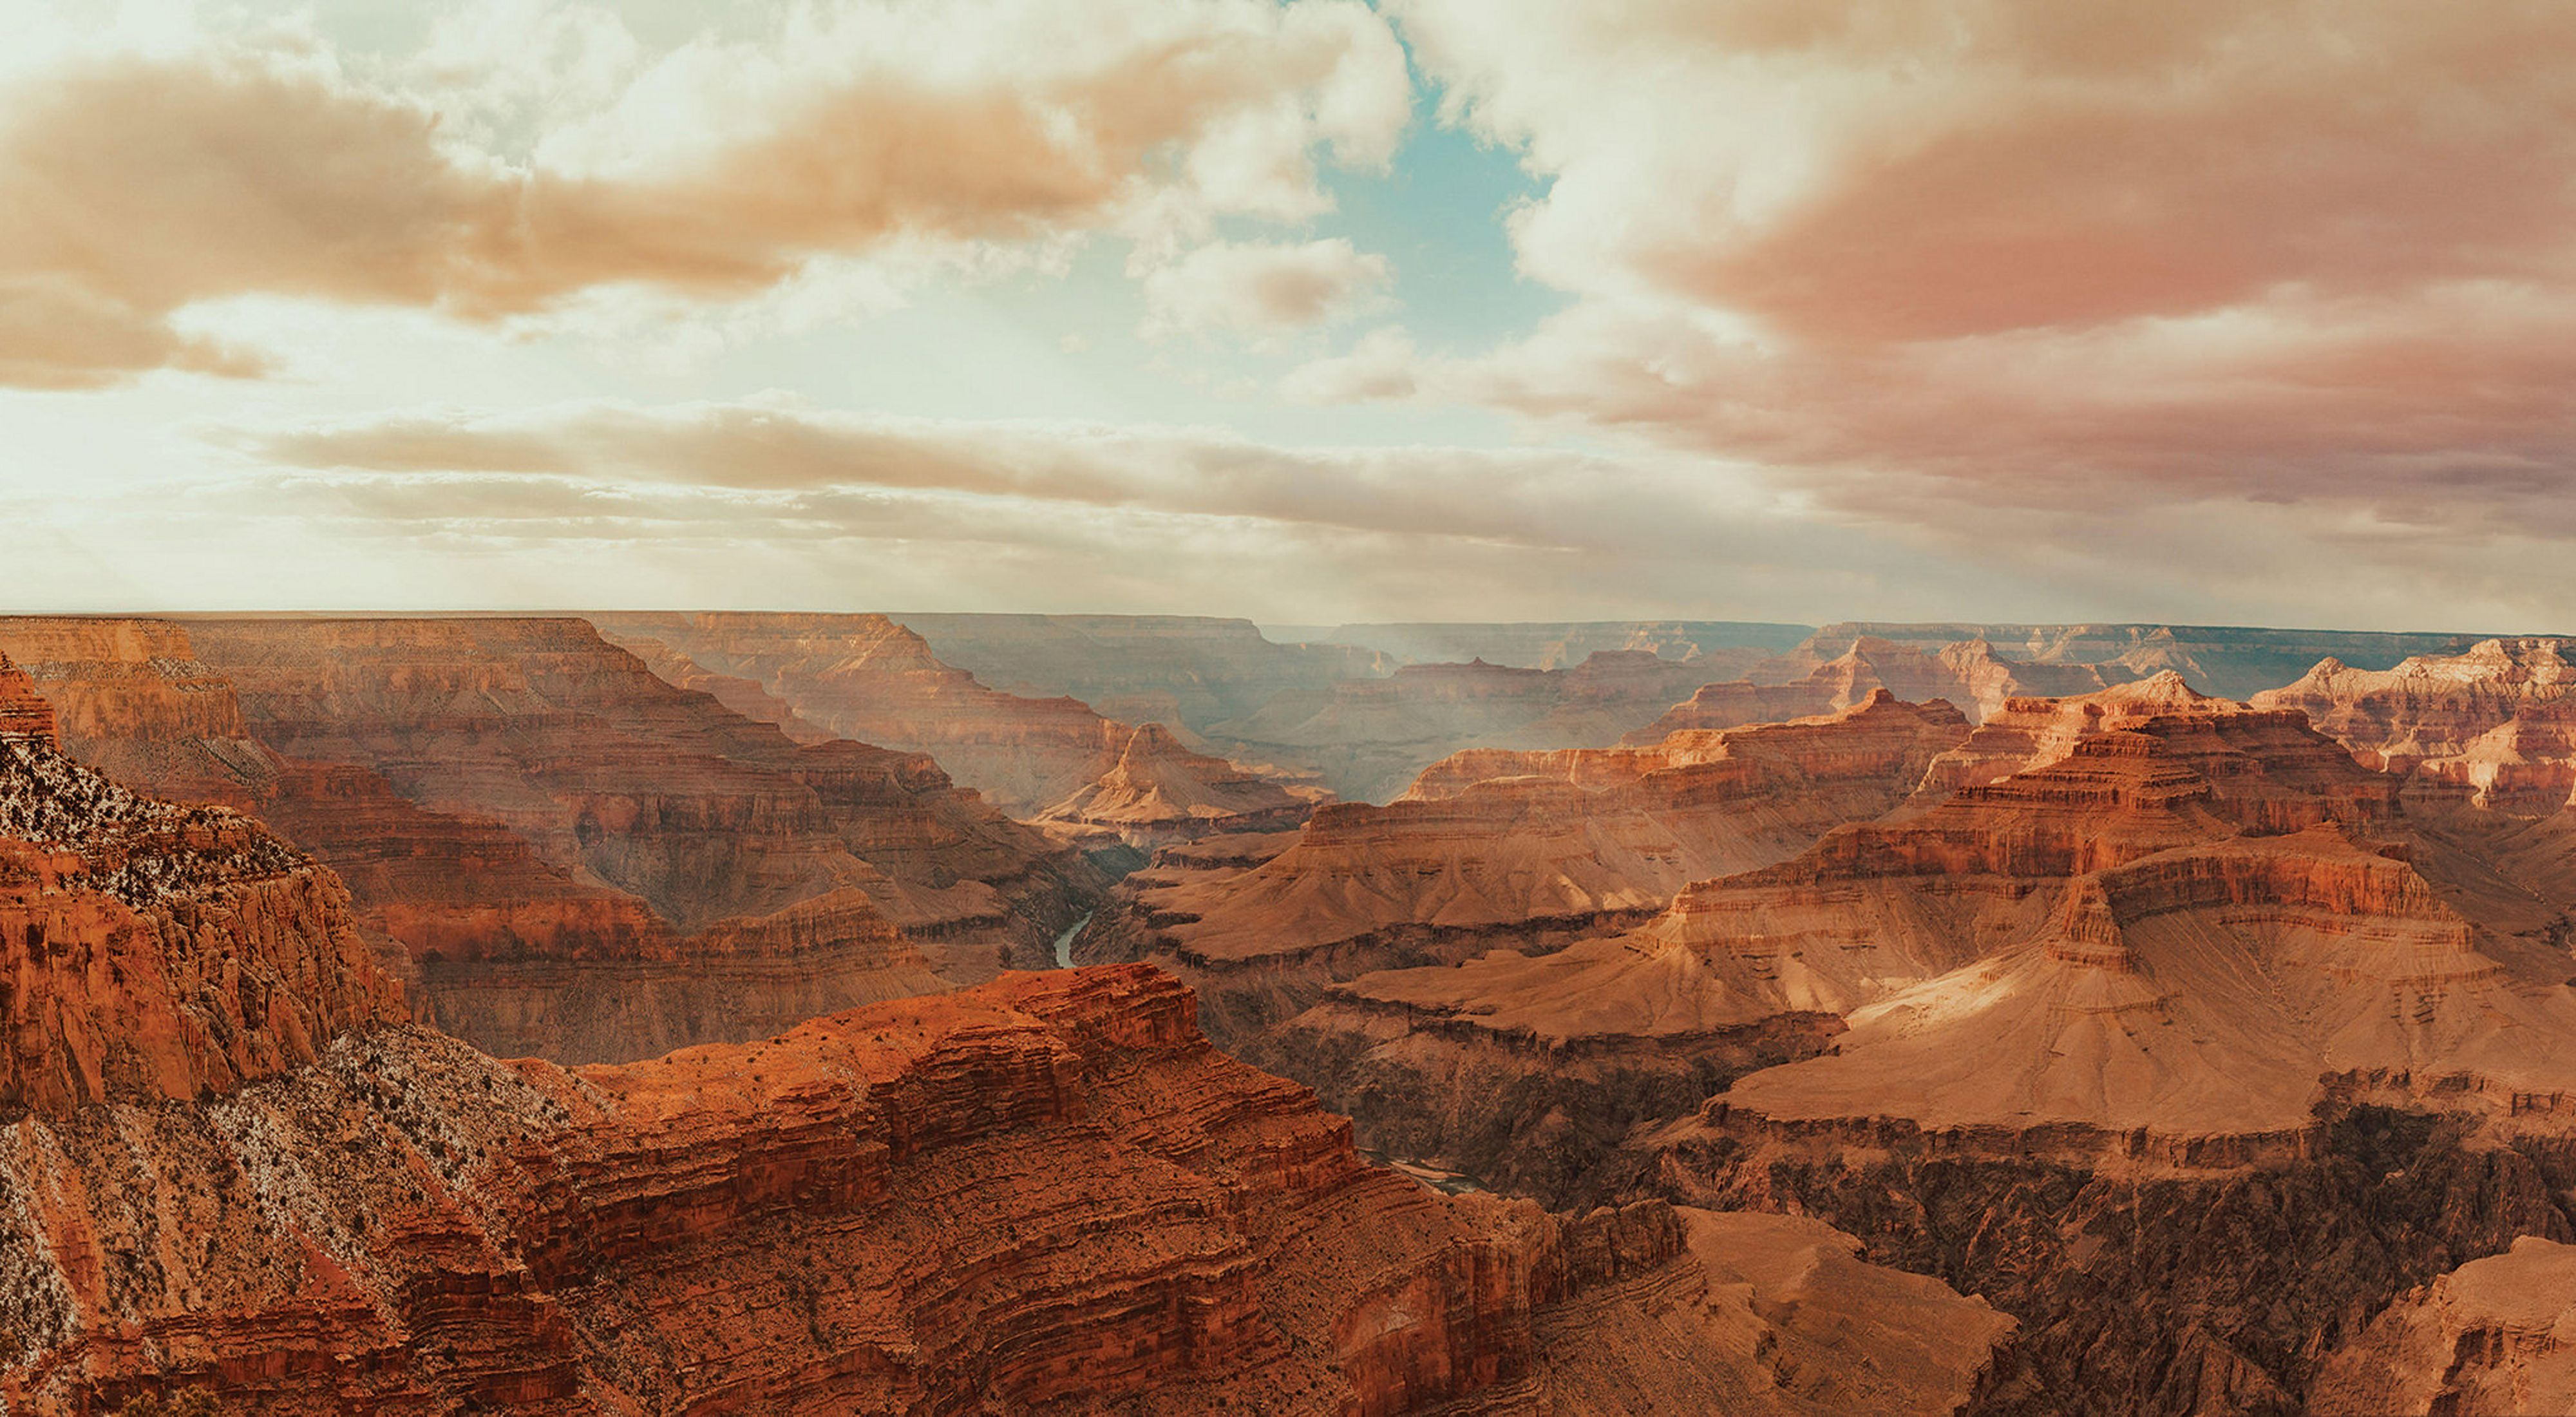 Bright golden sun rays fall over the red-colored Grand Canyon under a mostly cloudy sky.